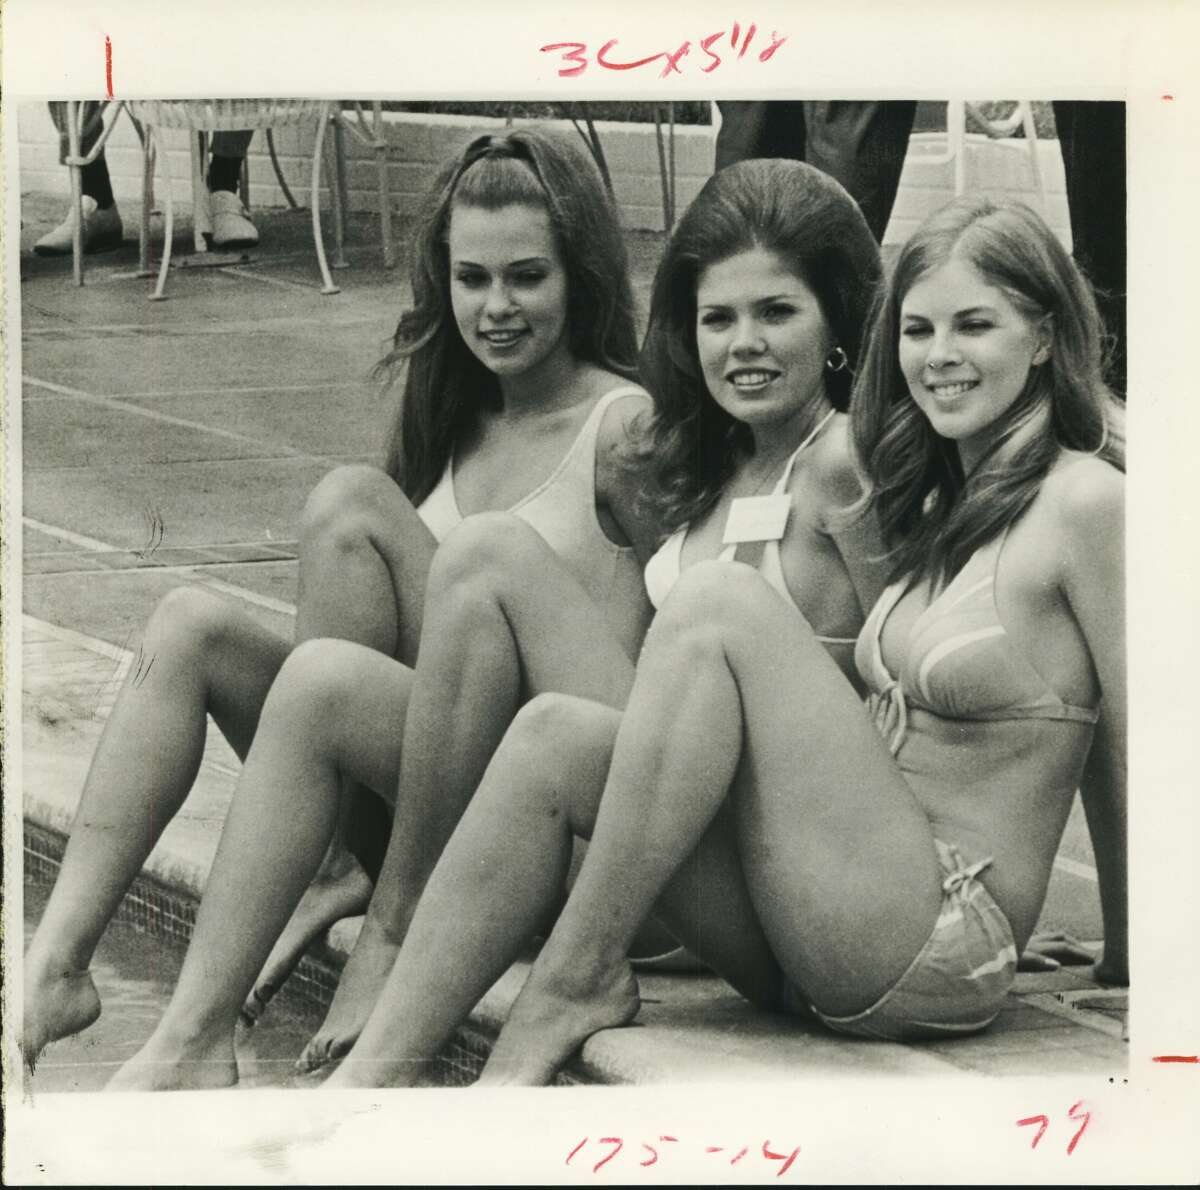 April 12, 1972: Three of the 39 Miss Texas Universe contestants take a breather during pre-pageant activities leading up to Saturday night's finals in San Antonio. From left, Suzan O'Neal (Miss Dallas), Debra Kinler (Miss Ft. Worth) and Sherri Vance (Miss Houston).